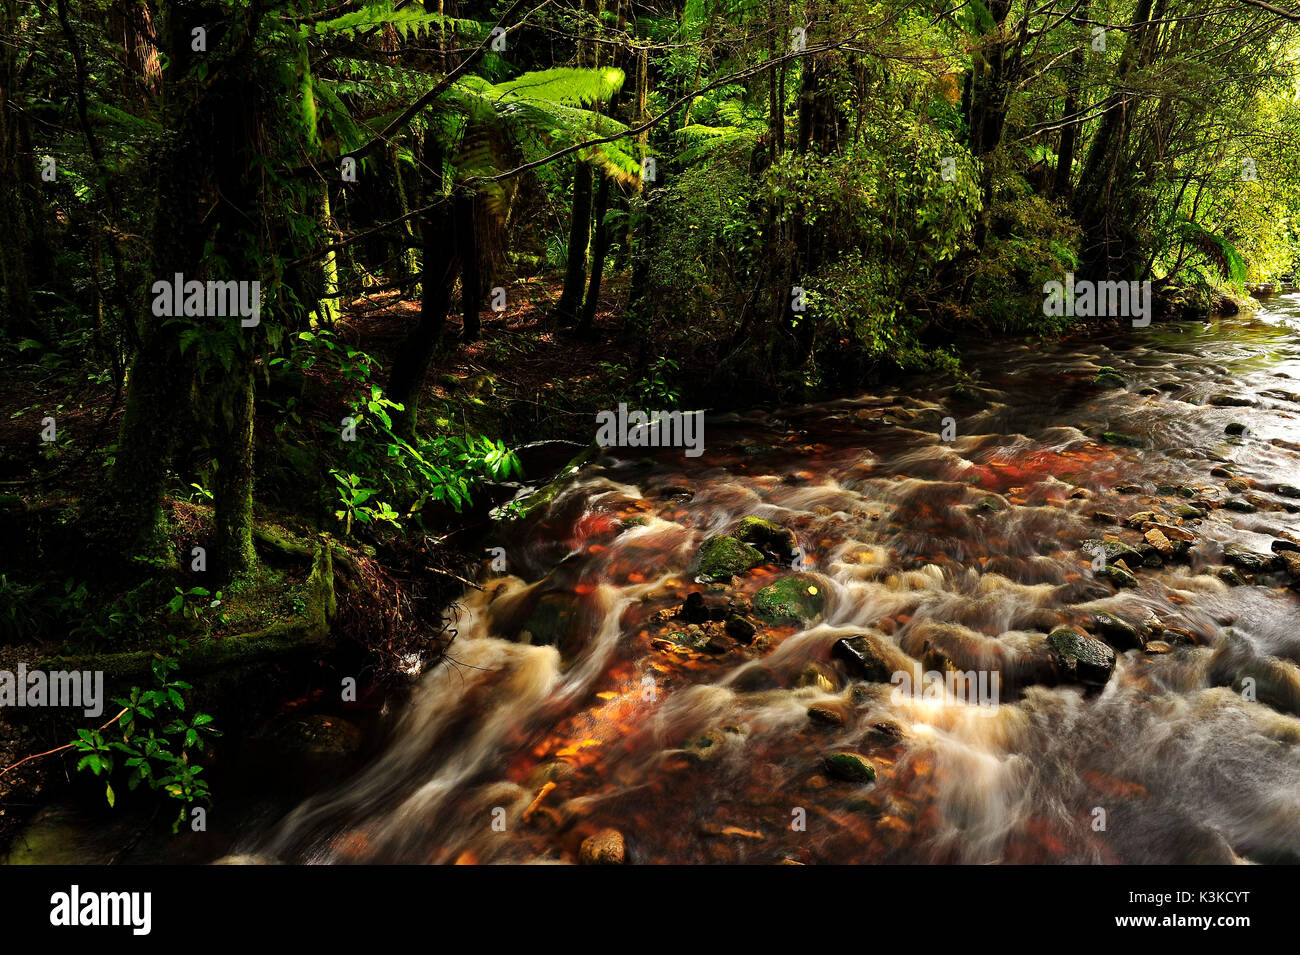 Savage small stream course with brown peat-containing water in the thick jungle of New Zealand. Stock Photo